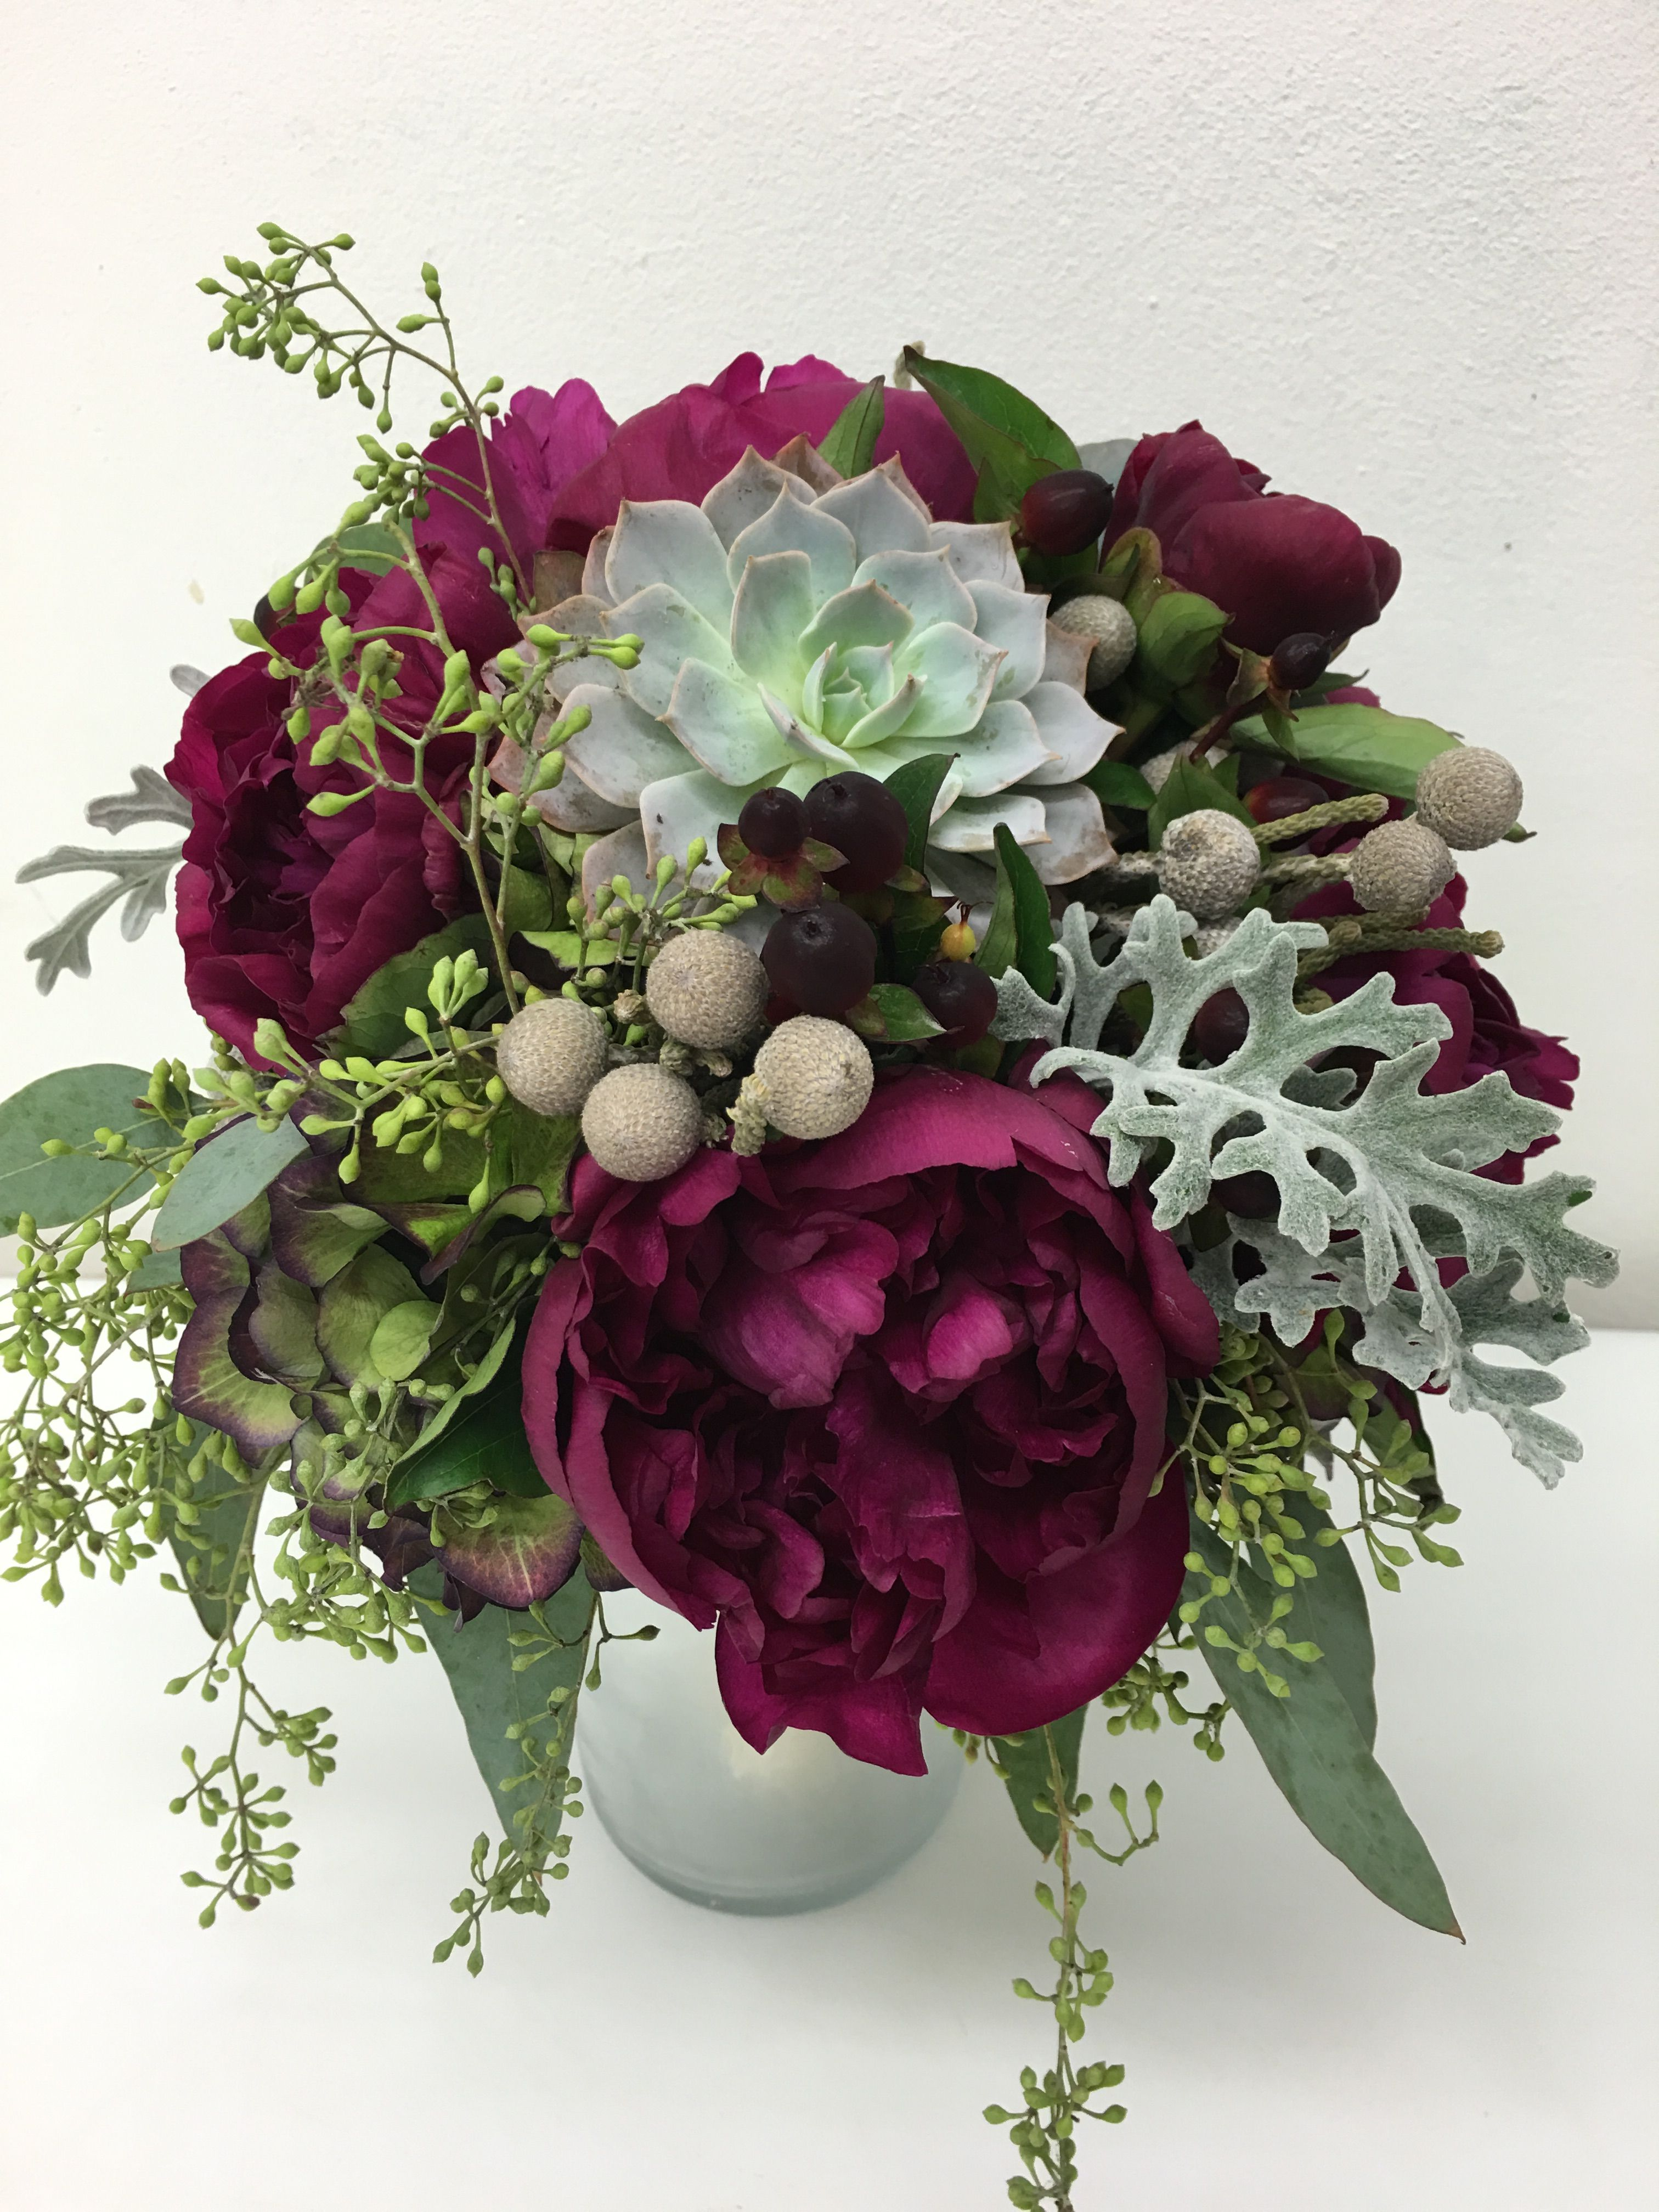 Jewel Toned Winter Bridal Bouquet With Wine Peonies, Succulents, Brunia